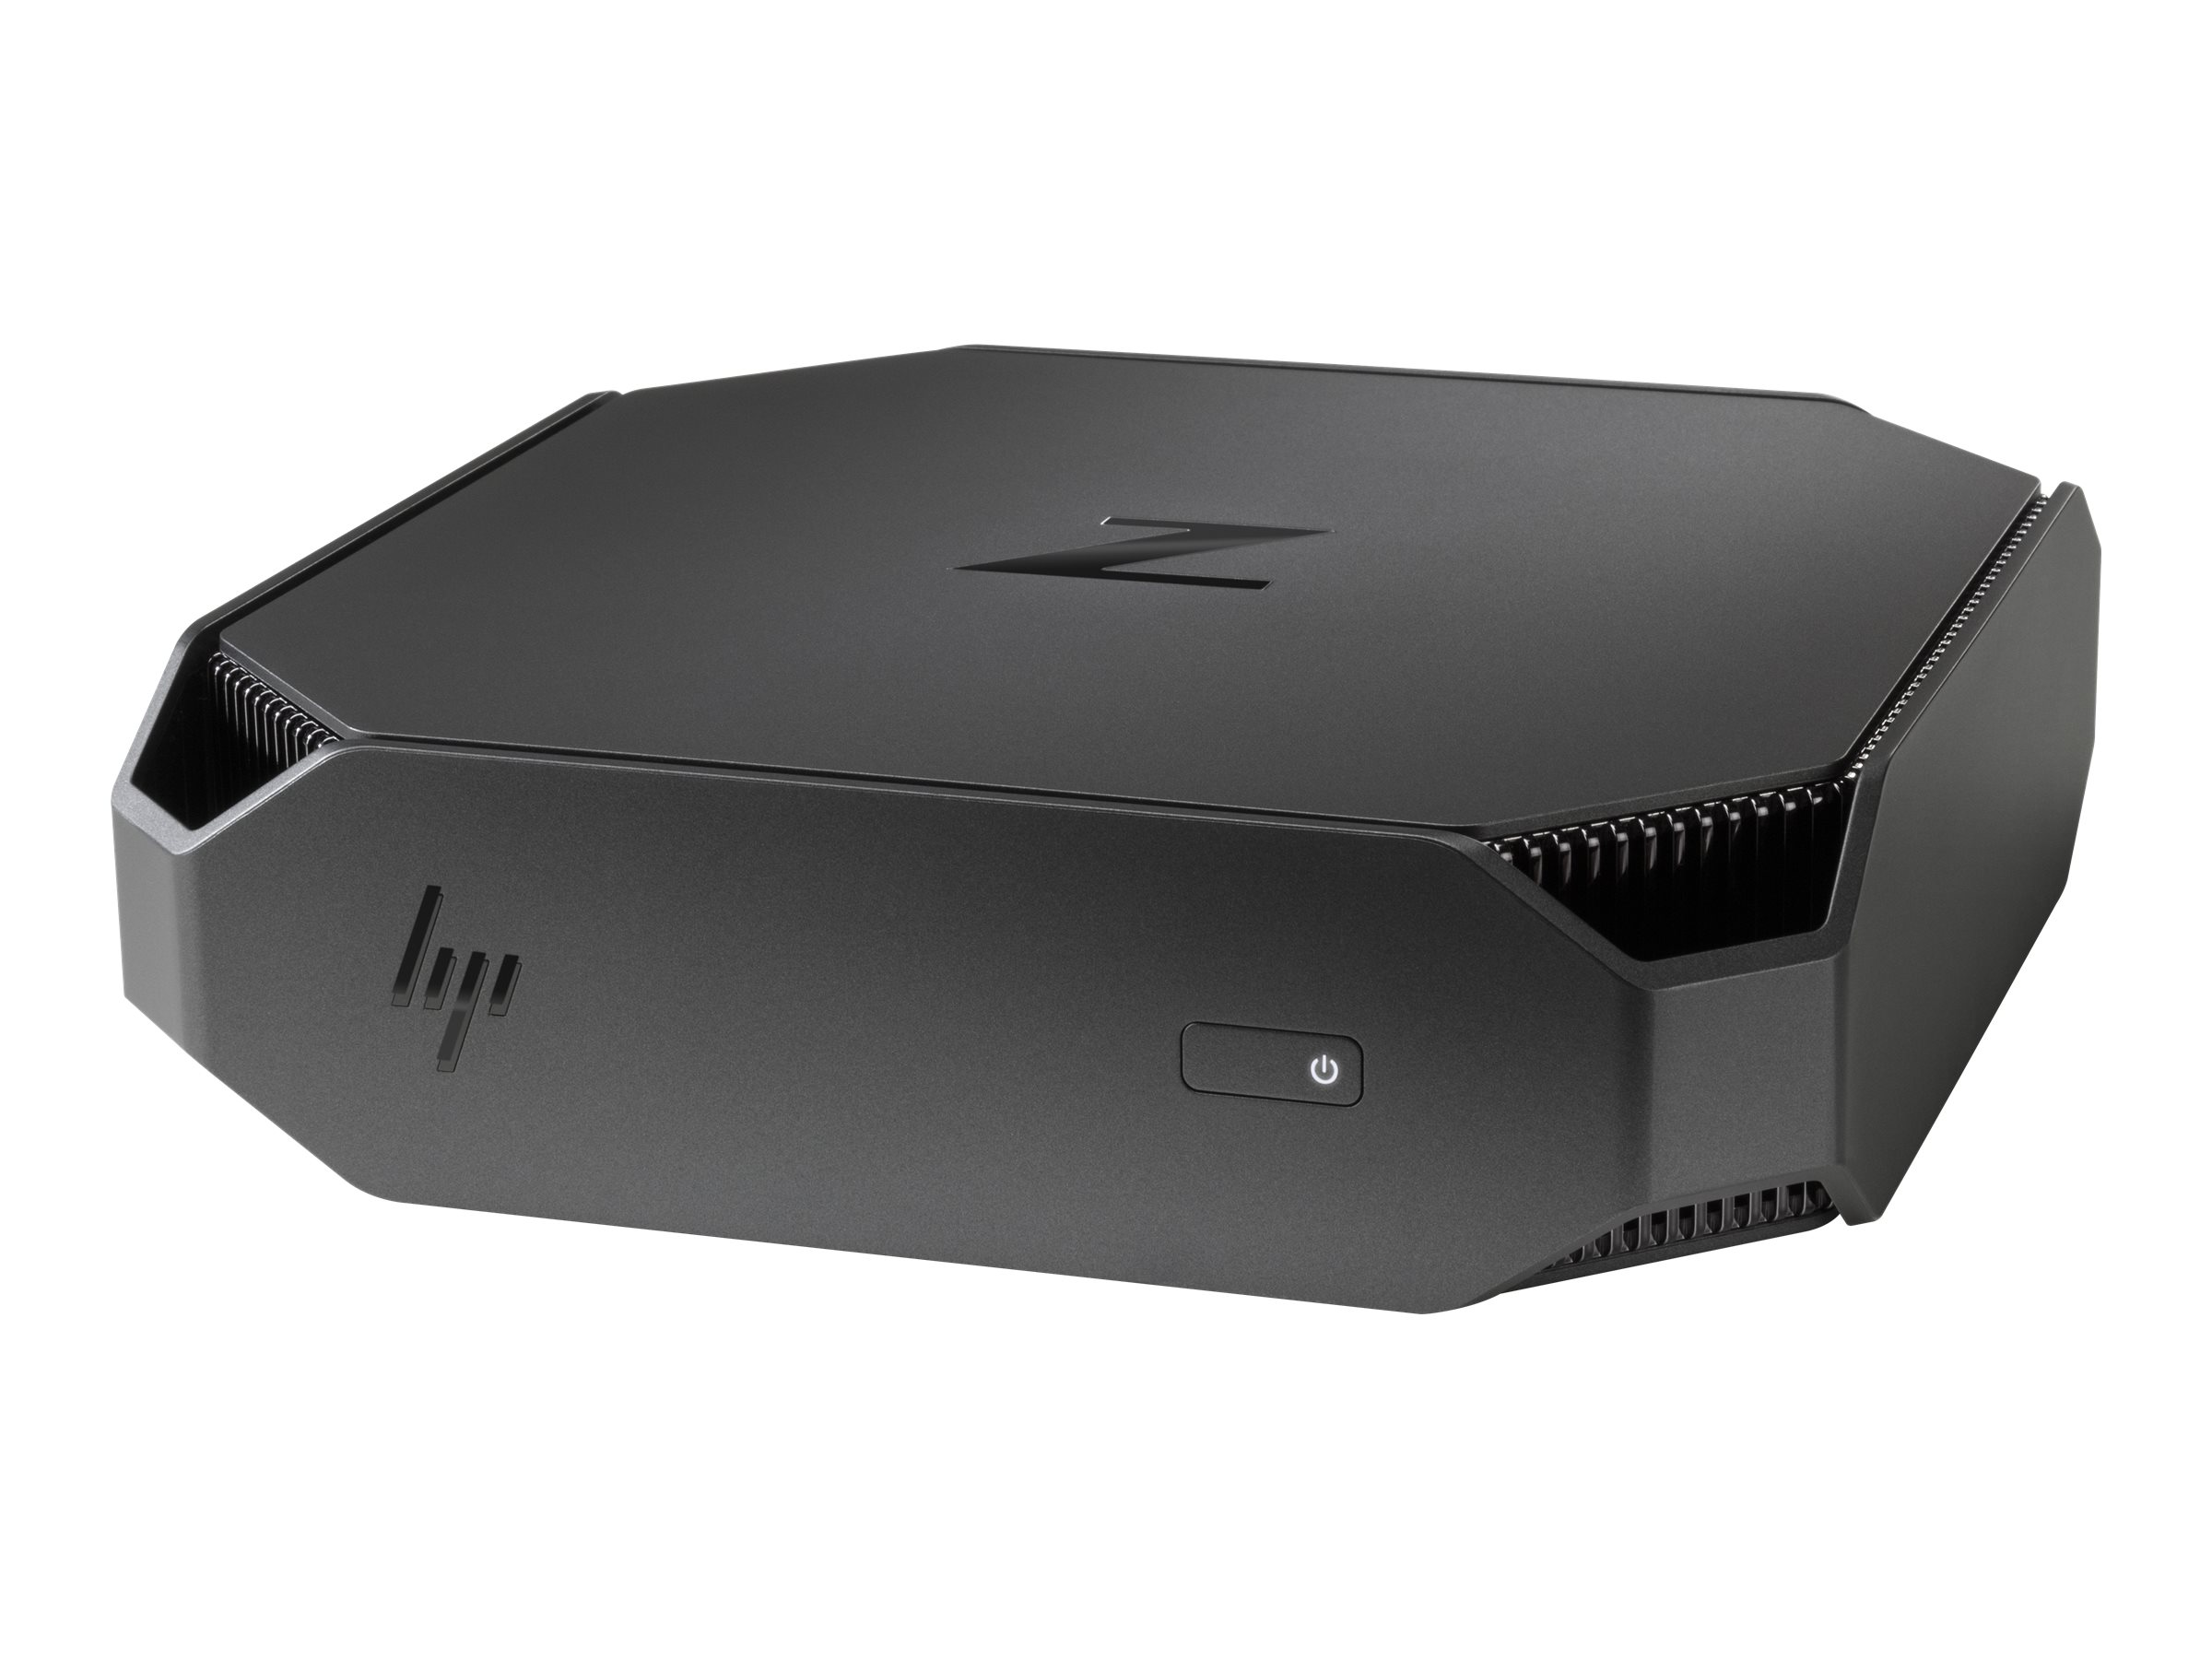 HP Workstation Z2 Mini G3 Performance - Mini - 1 x Core i7 6700 / 3.4 GHz - RAM 16 GB - SSD 256 GB - HP Z Turbo Drive G2, NVMe, Multi-Level-Zelle